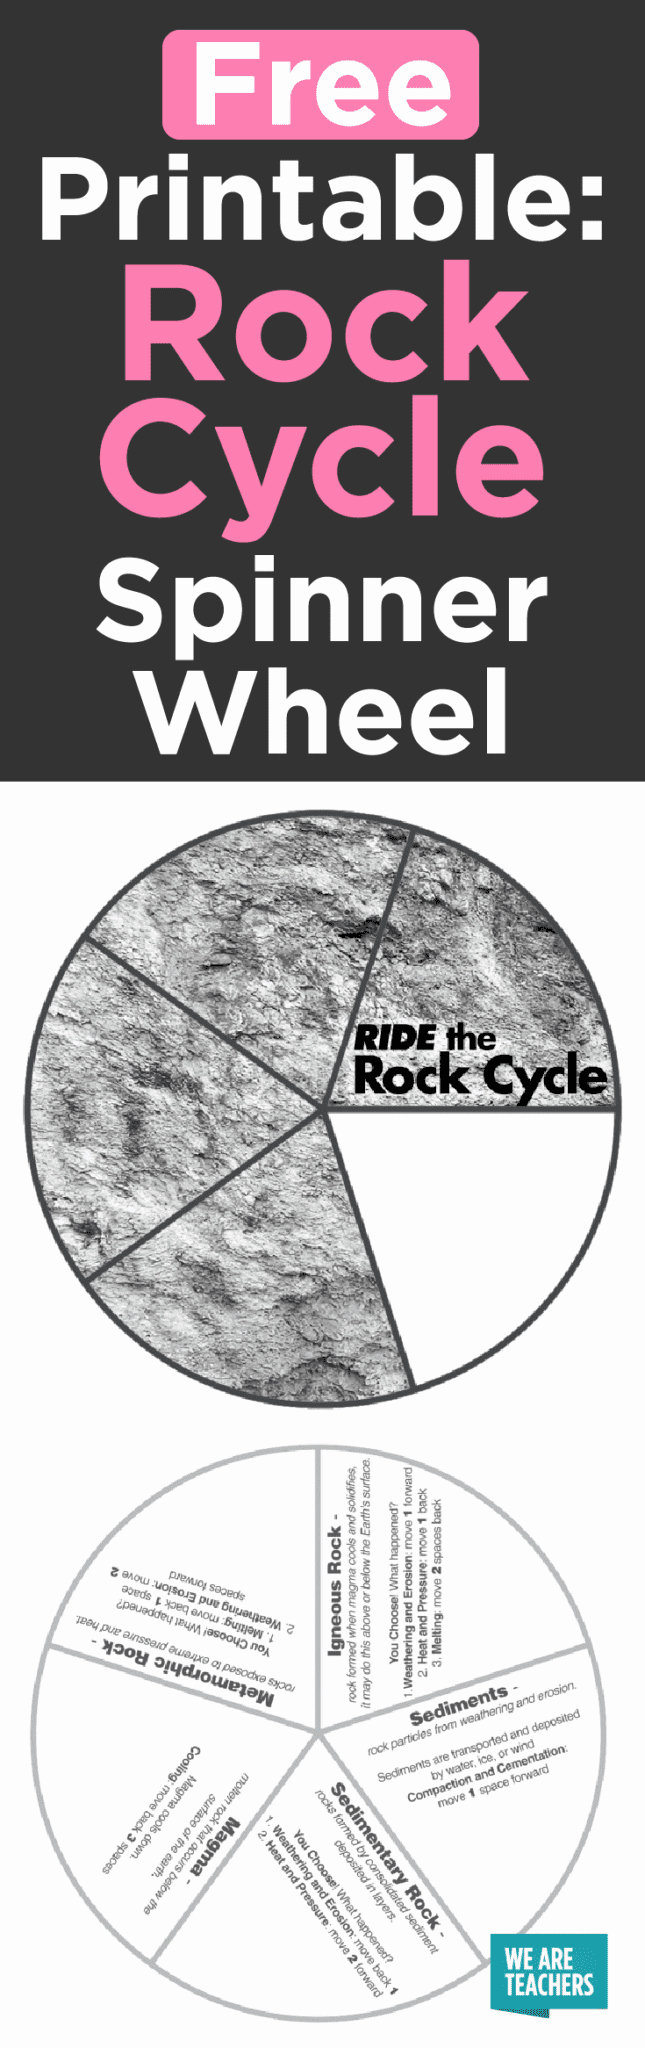 Rock Cycle Worksheet Middle School Luxury This Interactive Rock Cycle Worksheet is Perfect for Your